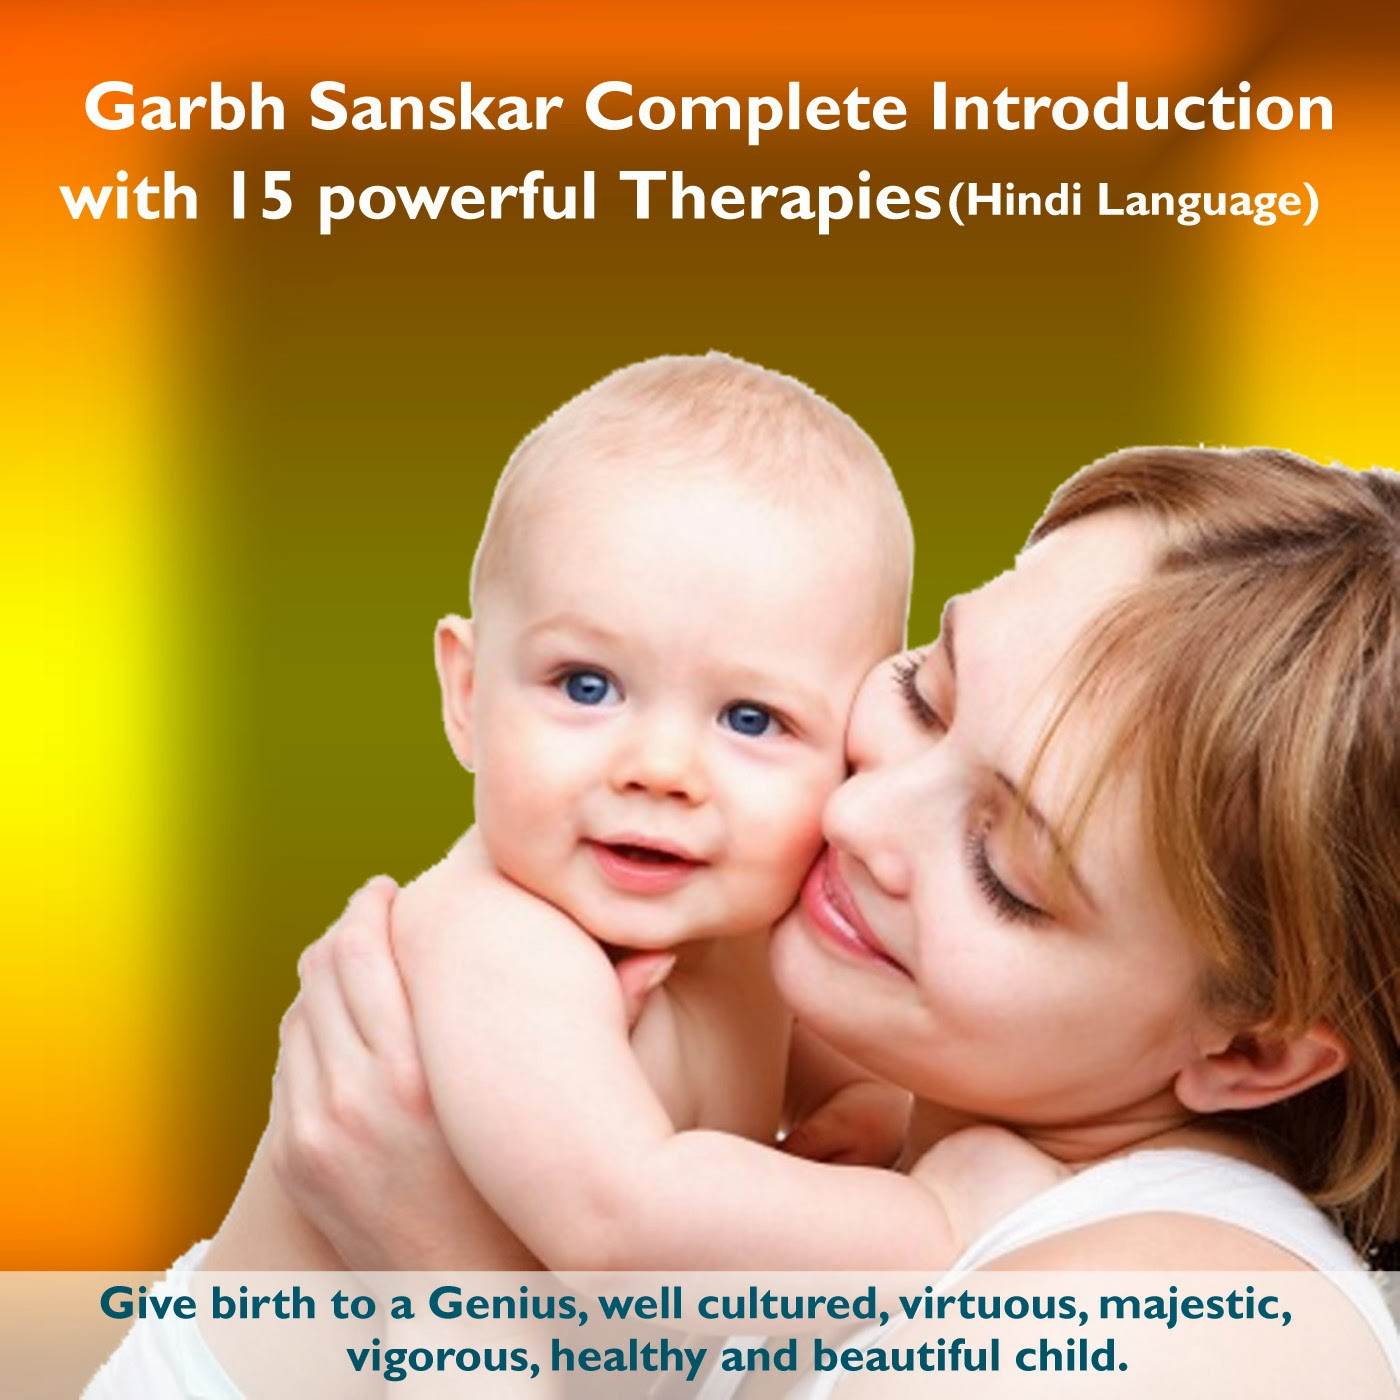 Garbh Sanskar Complete introduction with 15 powerful therapies (Hindi Language)